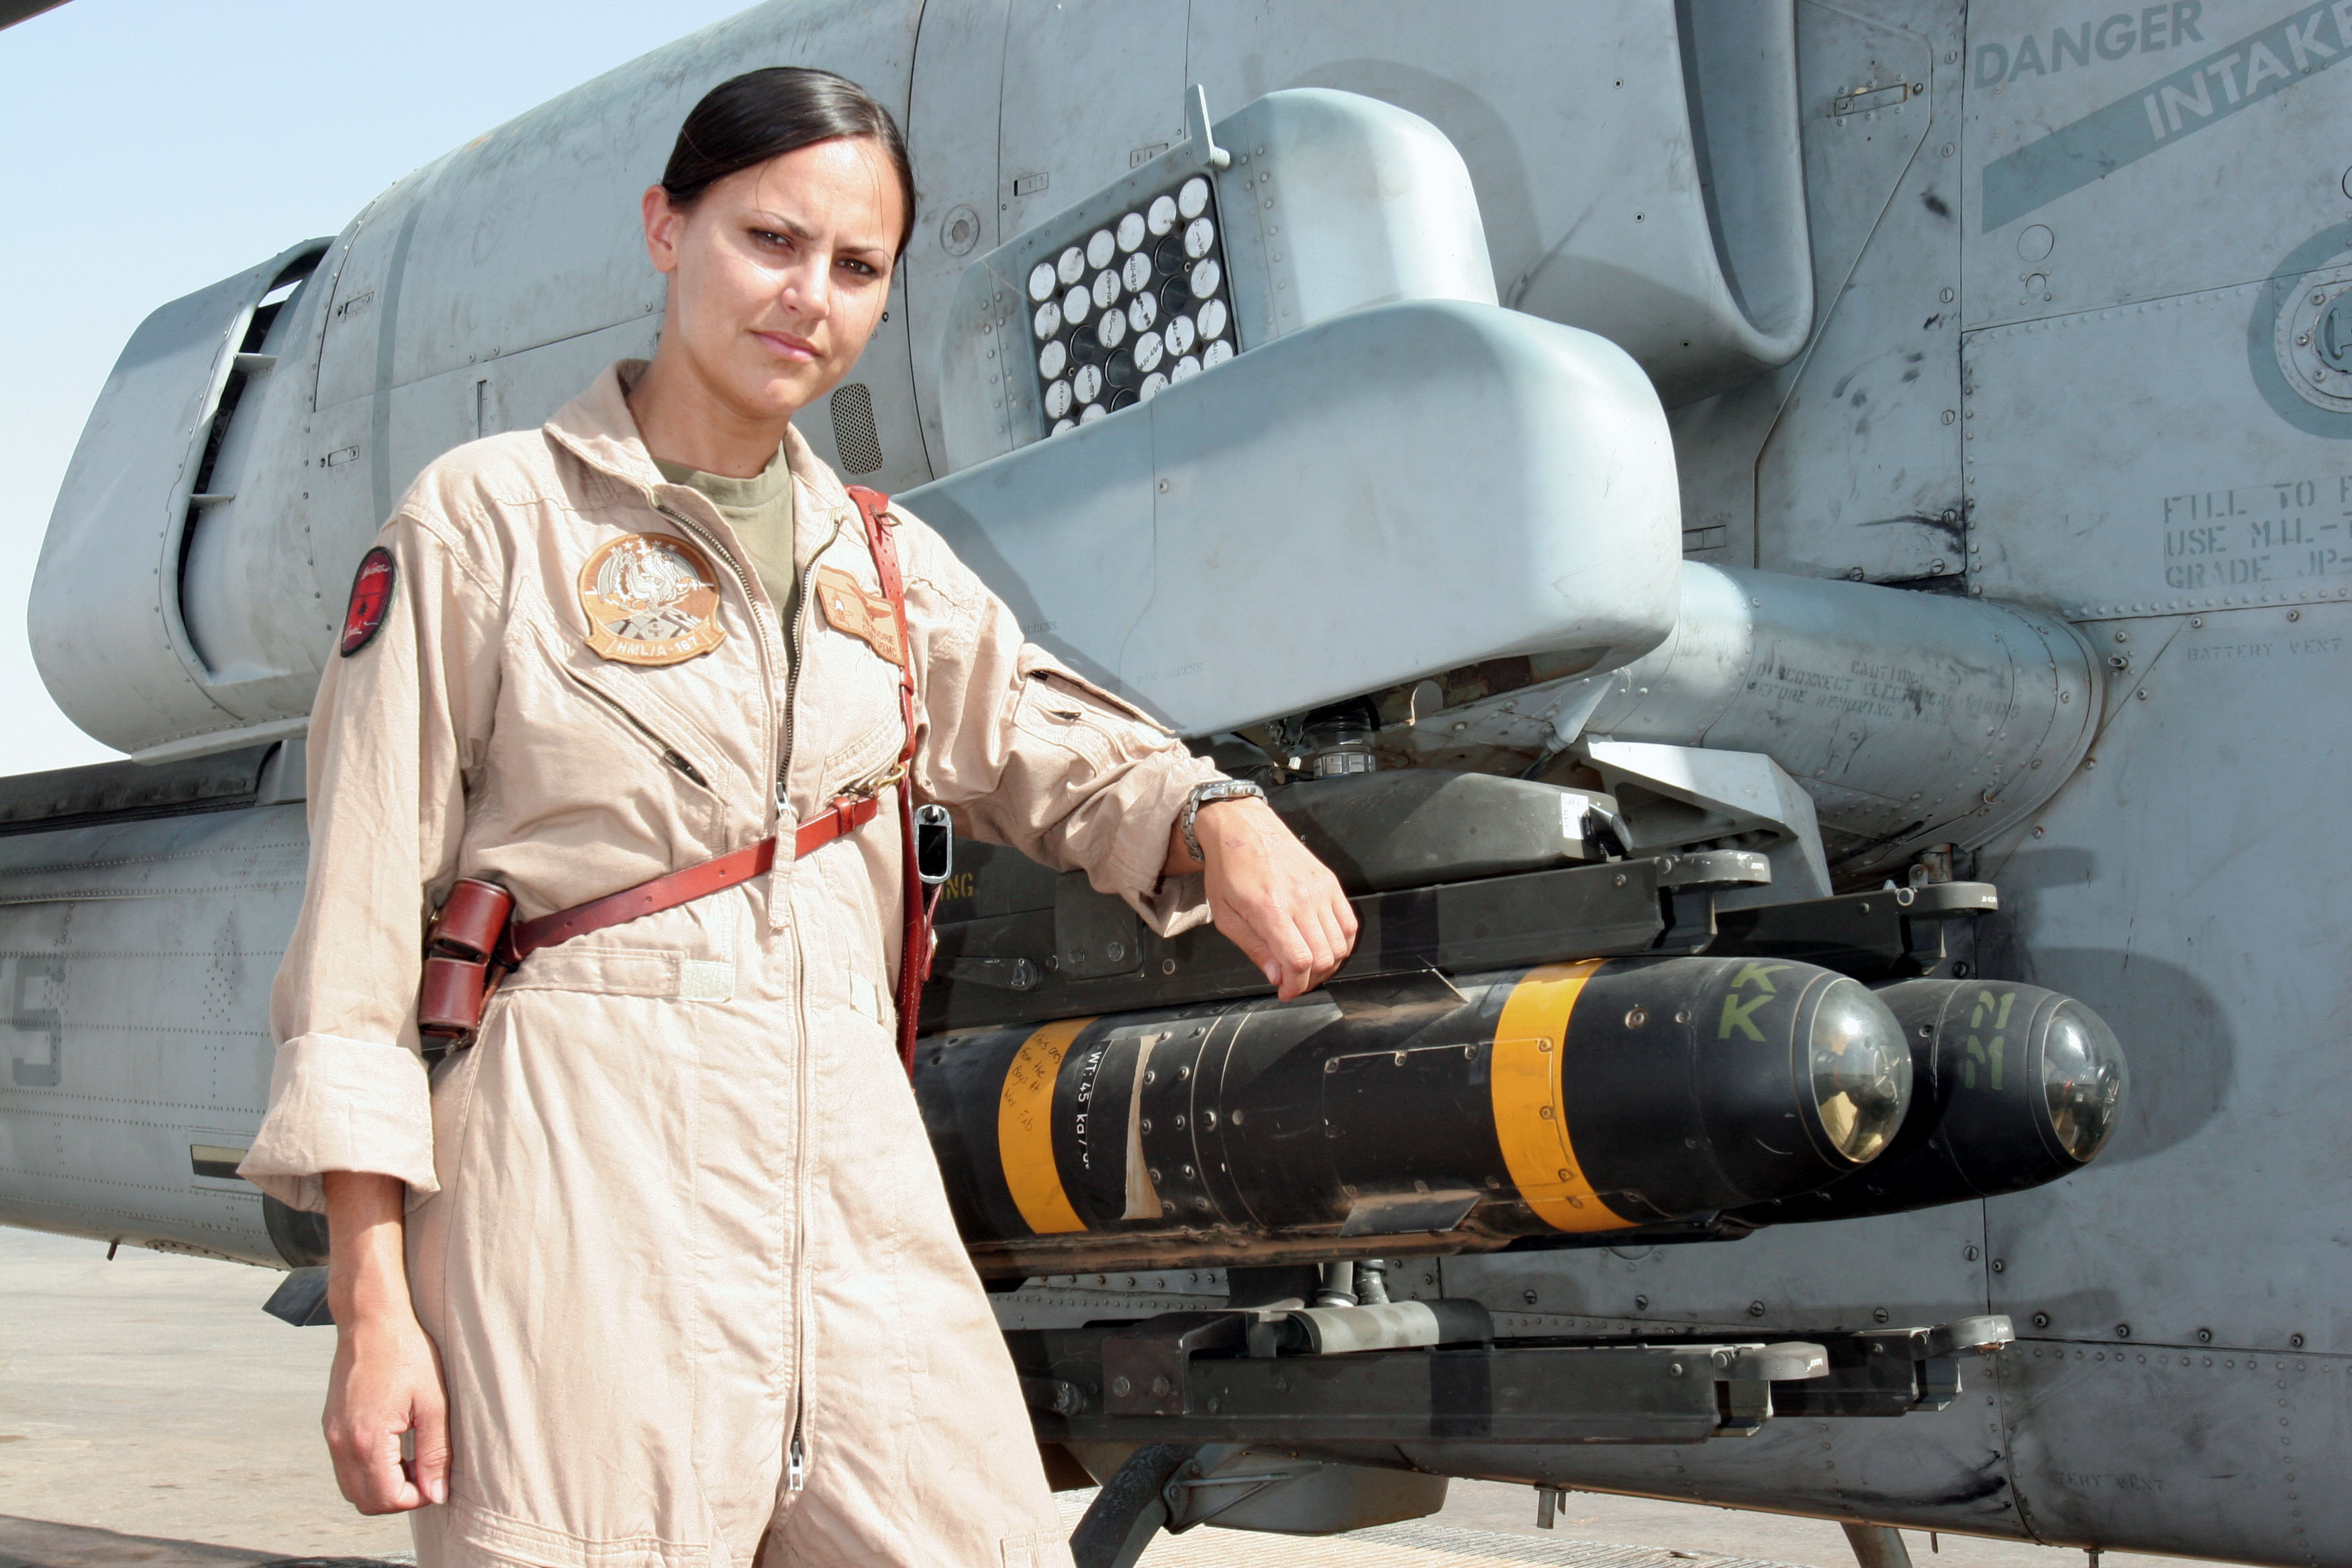 marine helicopter squadron one with California Paper Adds 2nd Maw Pilot To List Of 2005 Military Women Of Merit on Pak 20army 20images 20download further V 22 hmx 1 sim likewise Buffalo Native Serves As Huey Crew Chief In Iraq likewise Kennon Protects Interior Cabin For Hmx 1 U S Presidential Greenside Fleet additionally First Female Fly Marine One Relieved  mand.